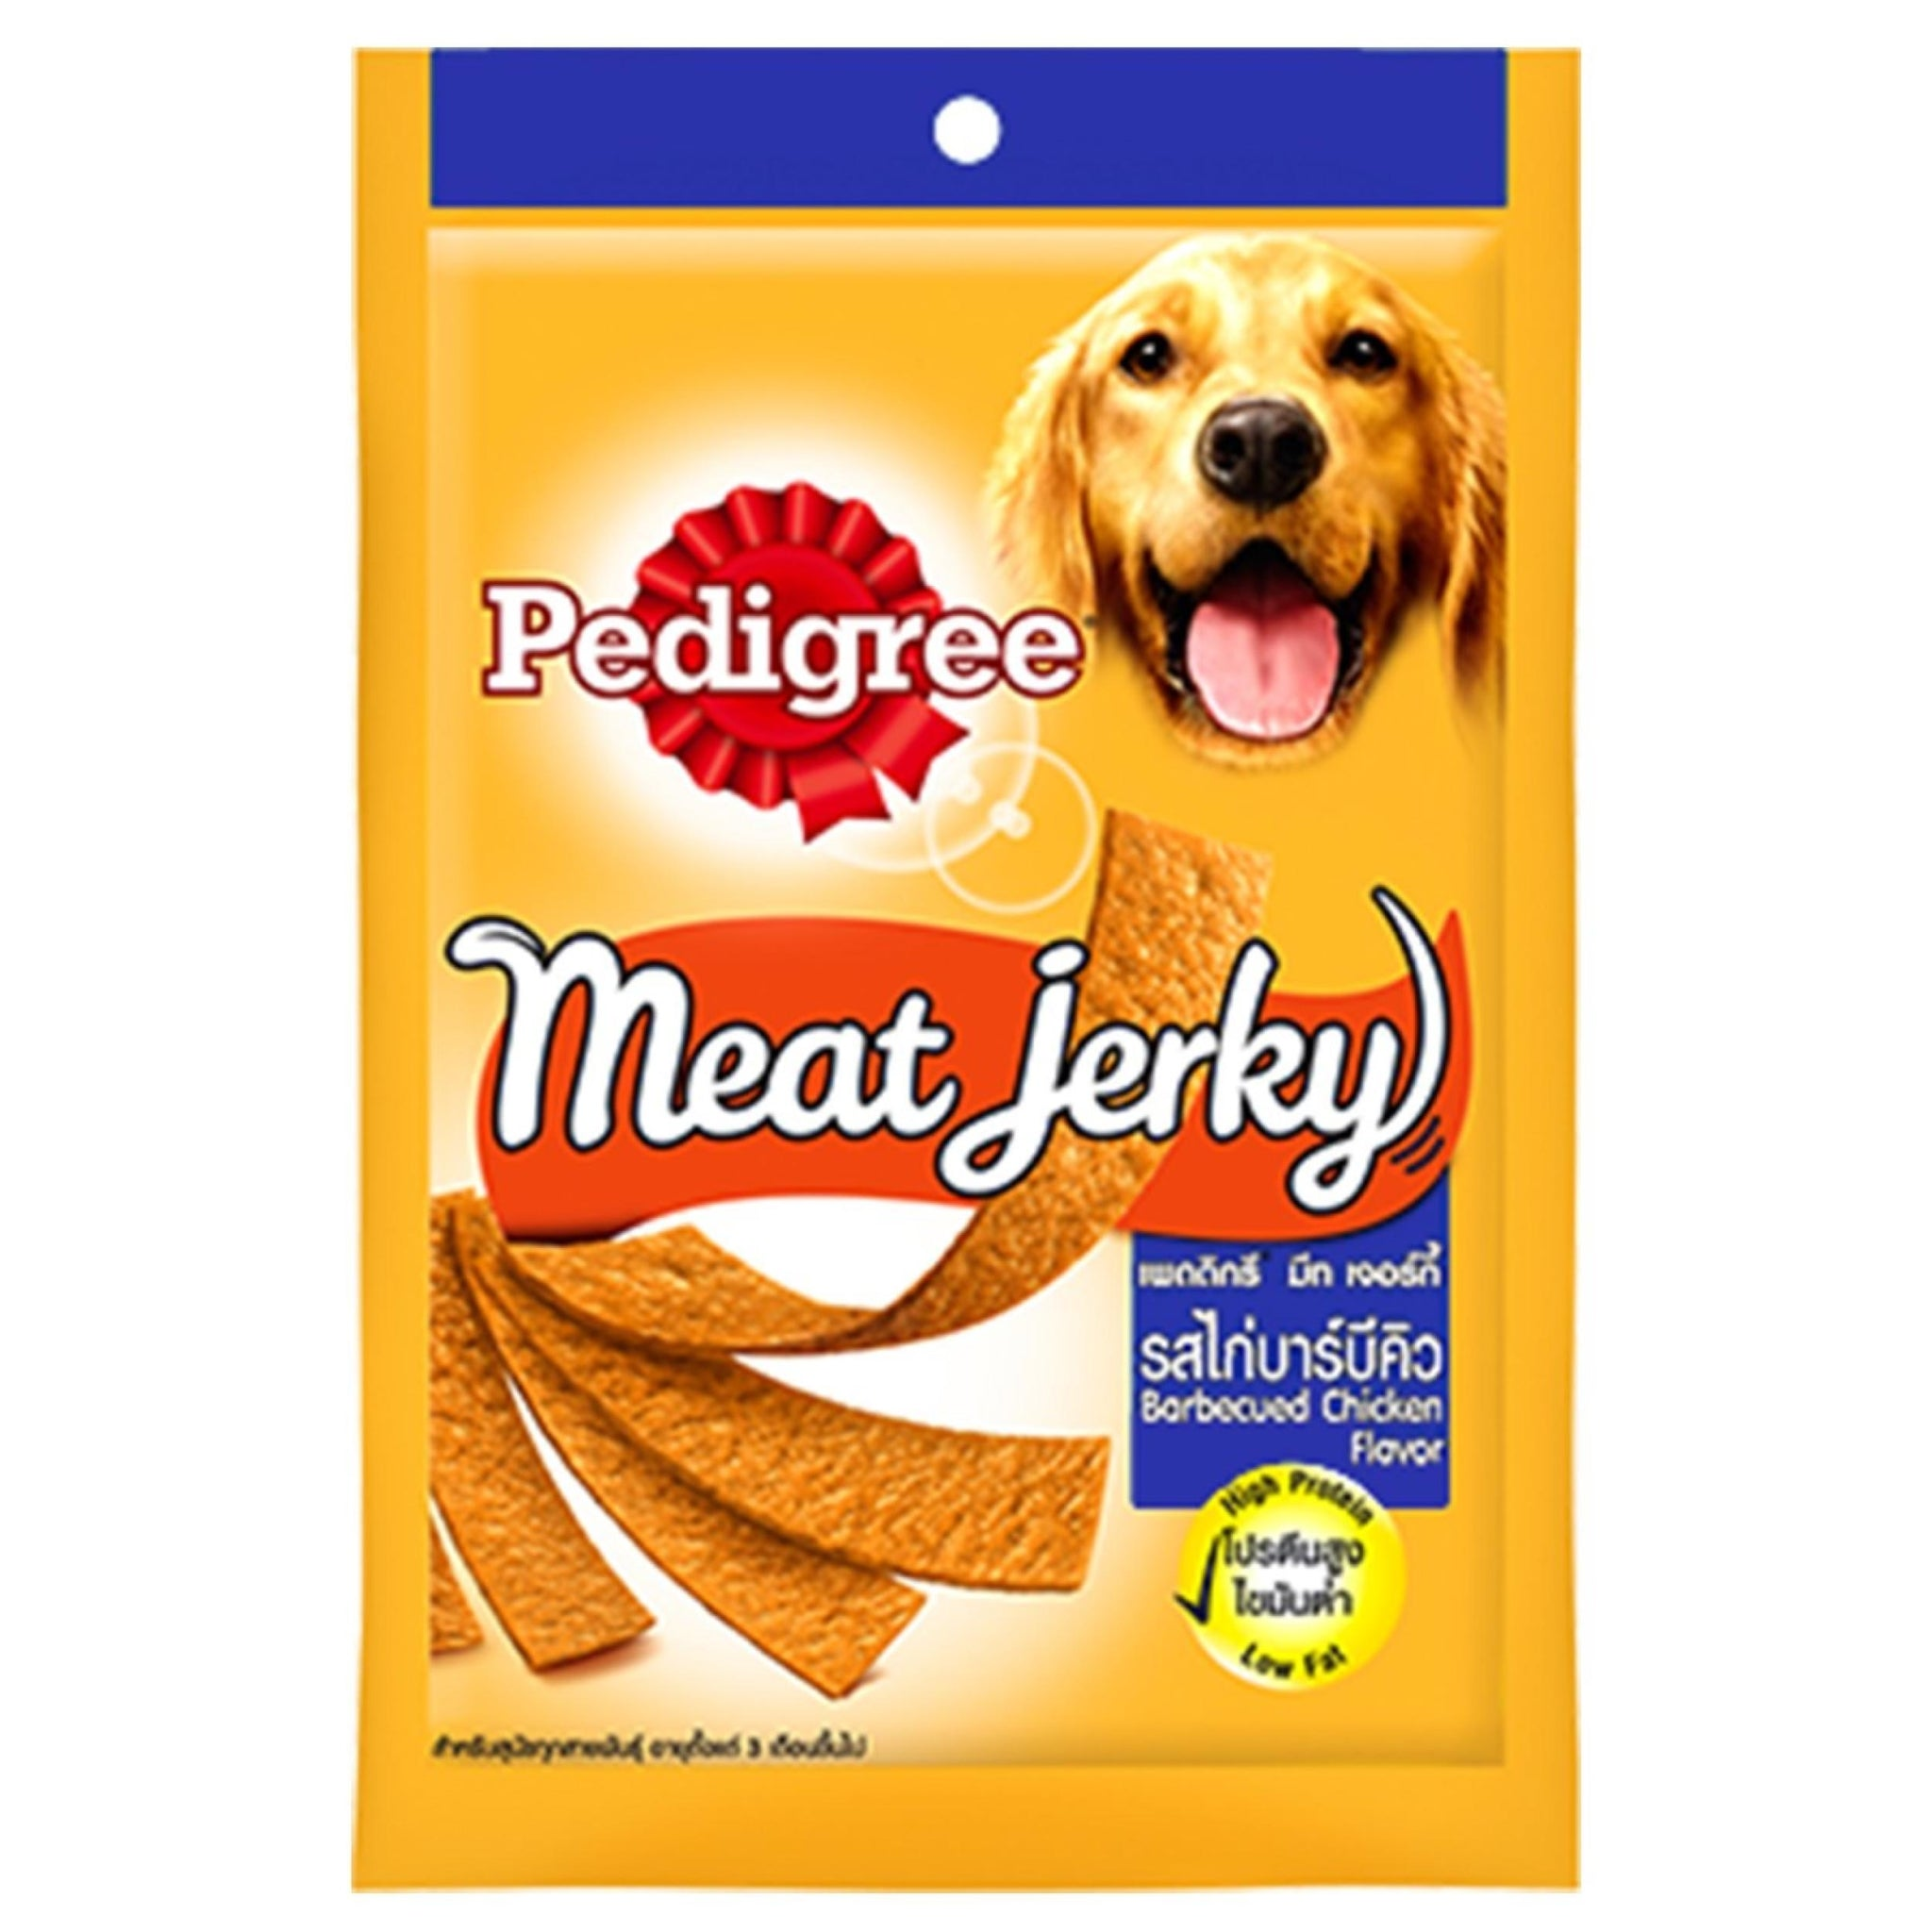 Pedigree Care and Treats Adult Meat Jerky Barbeque Chicken Chew Treat - Poochles